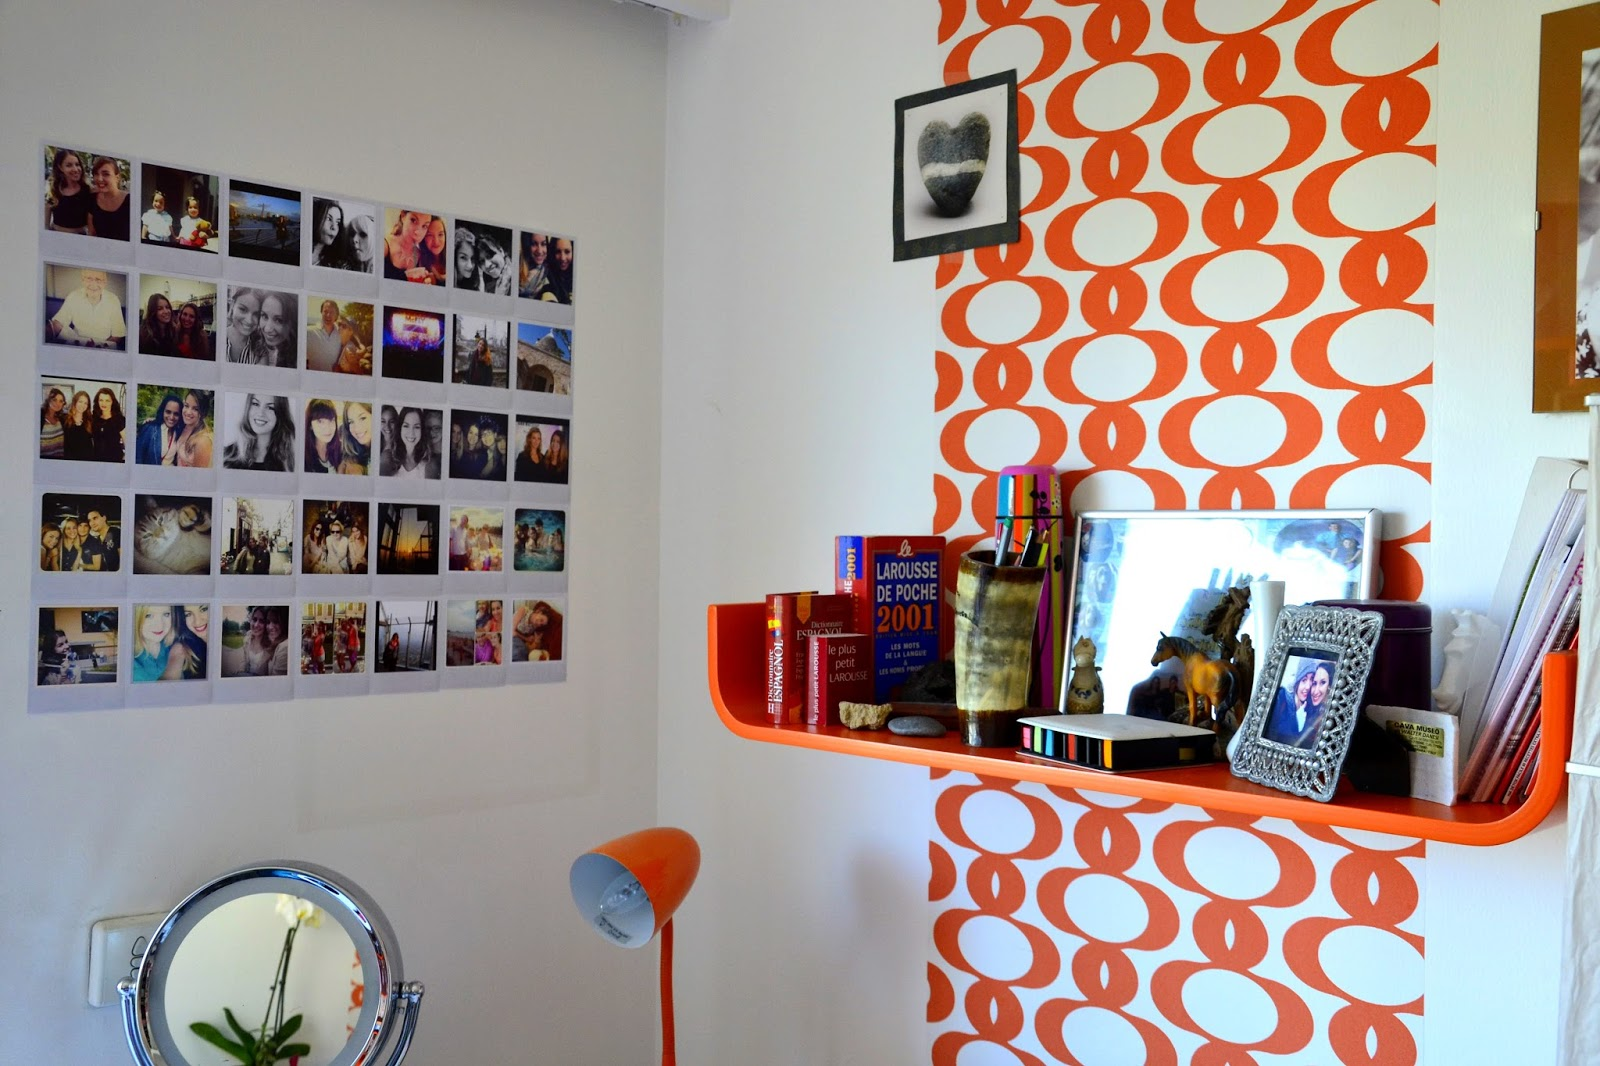 Comment Faire Un Mur De Photo comment j'ai créé mon mur instagram #déco 1 - a frenchie in london